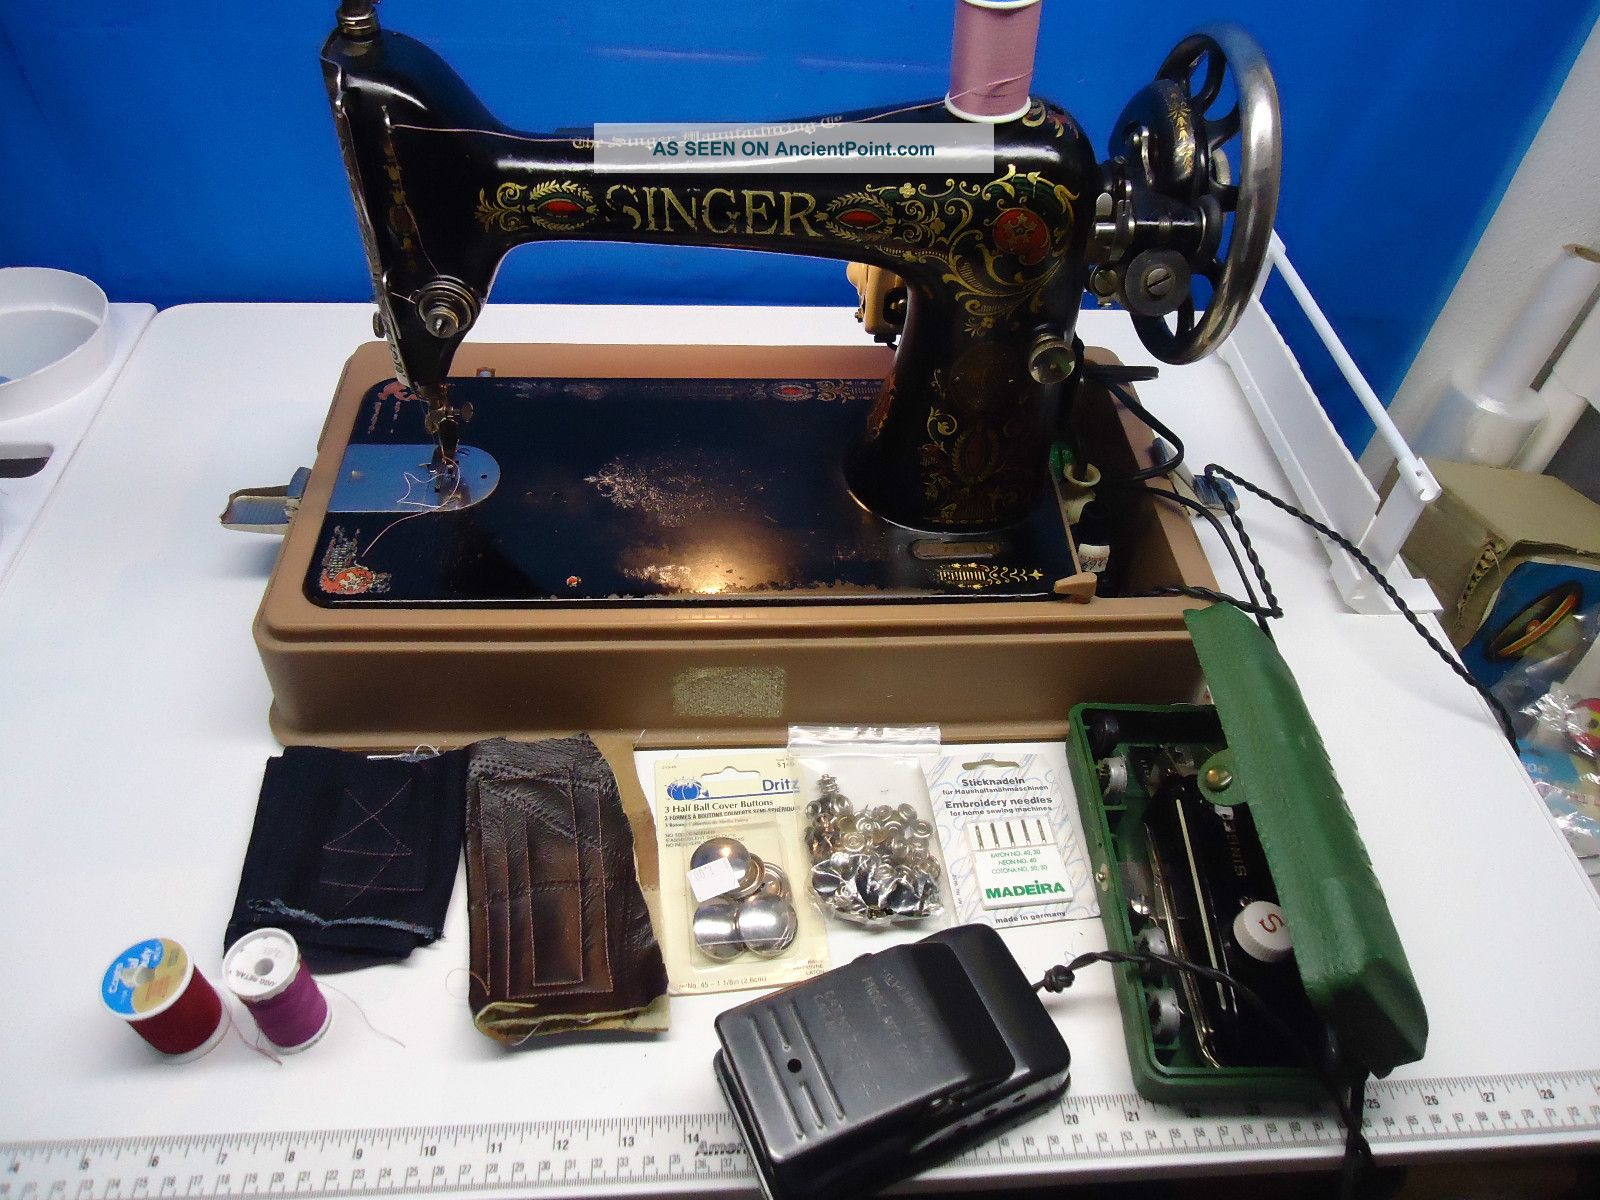 Singer 66 Redeye Heavy Duty Industrial Strength - Vintage - For Leather & Much More Sewing Machines photo